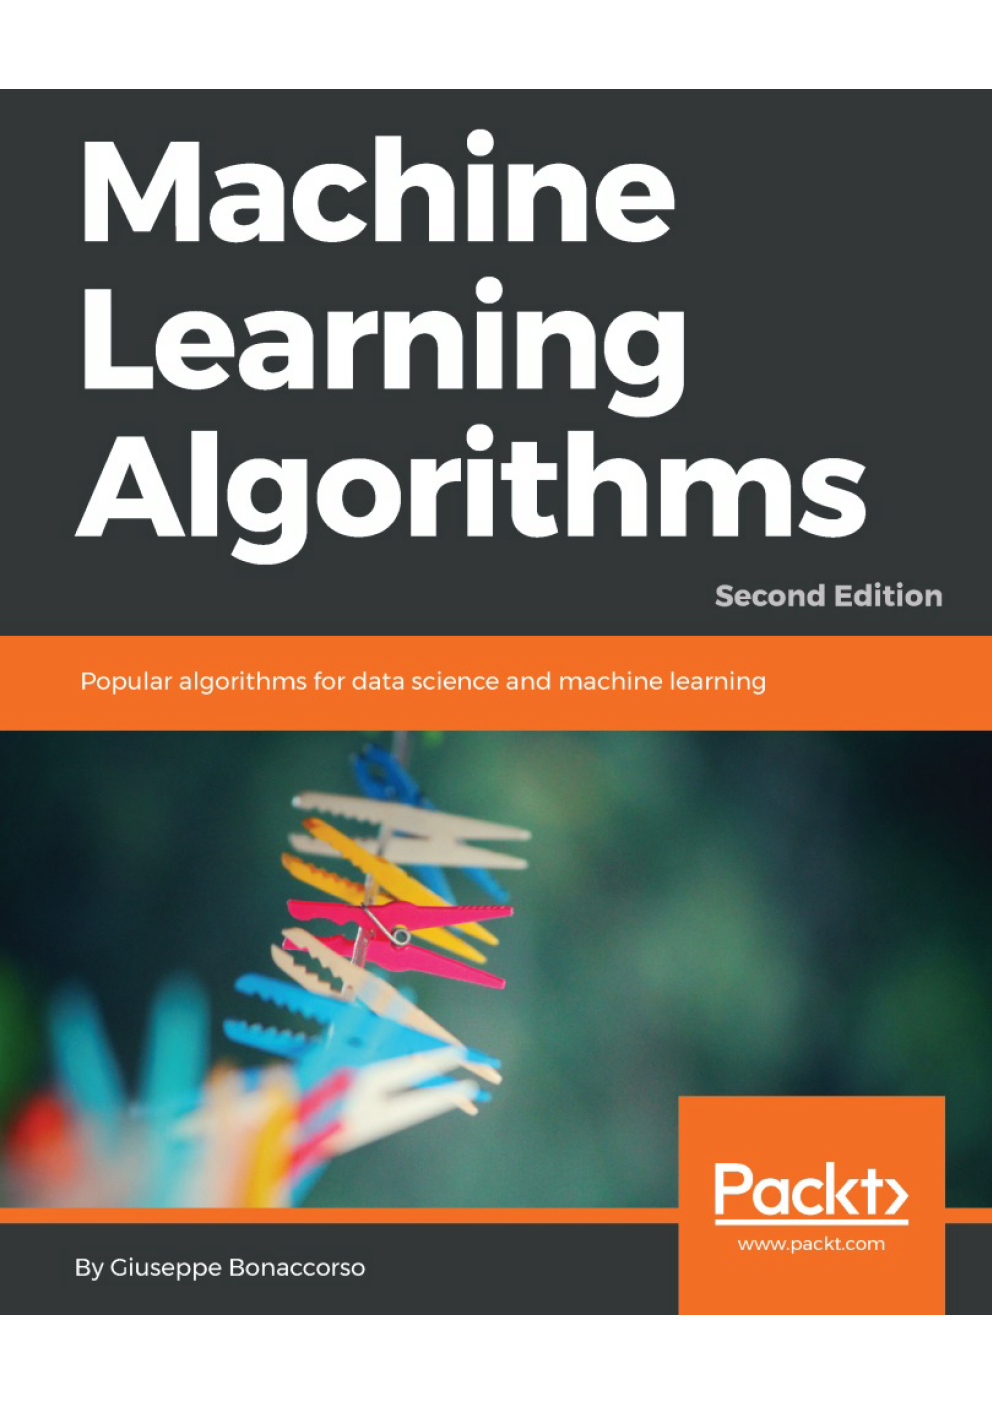 machine-learning-algorithms-2nd.png